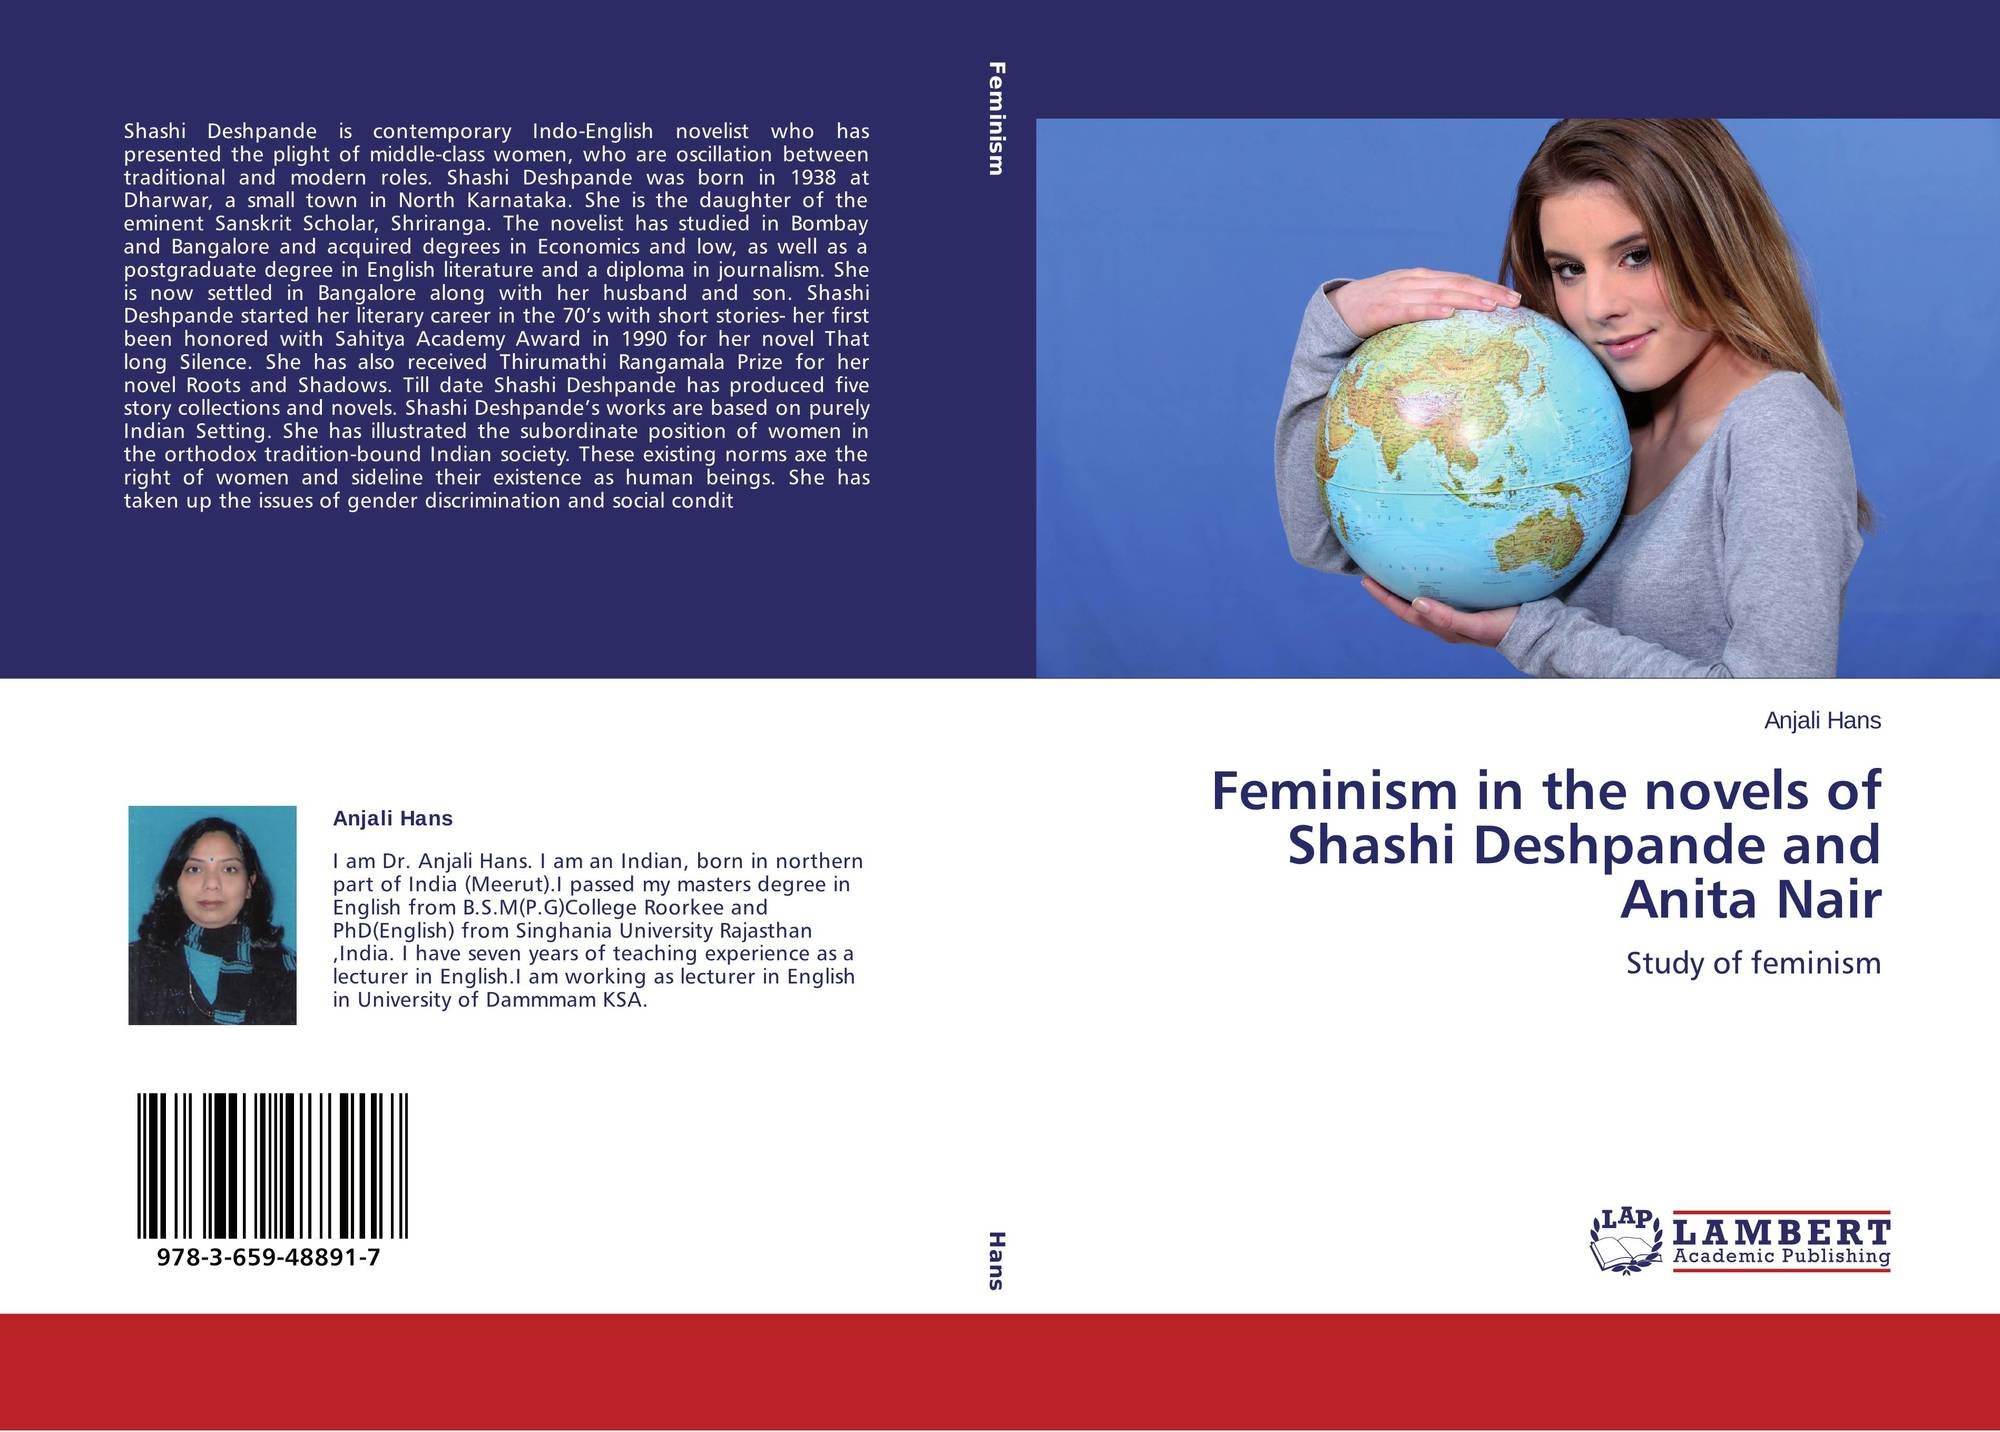 ferministic perspectives in shashi deshpande novels 2017-12-2  feminism in shashi deshpande's novels  denial of being a feminist a look at her novels will reveal her treatment of major women characters.